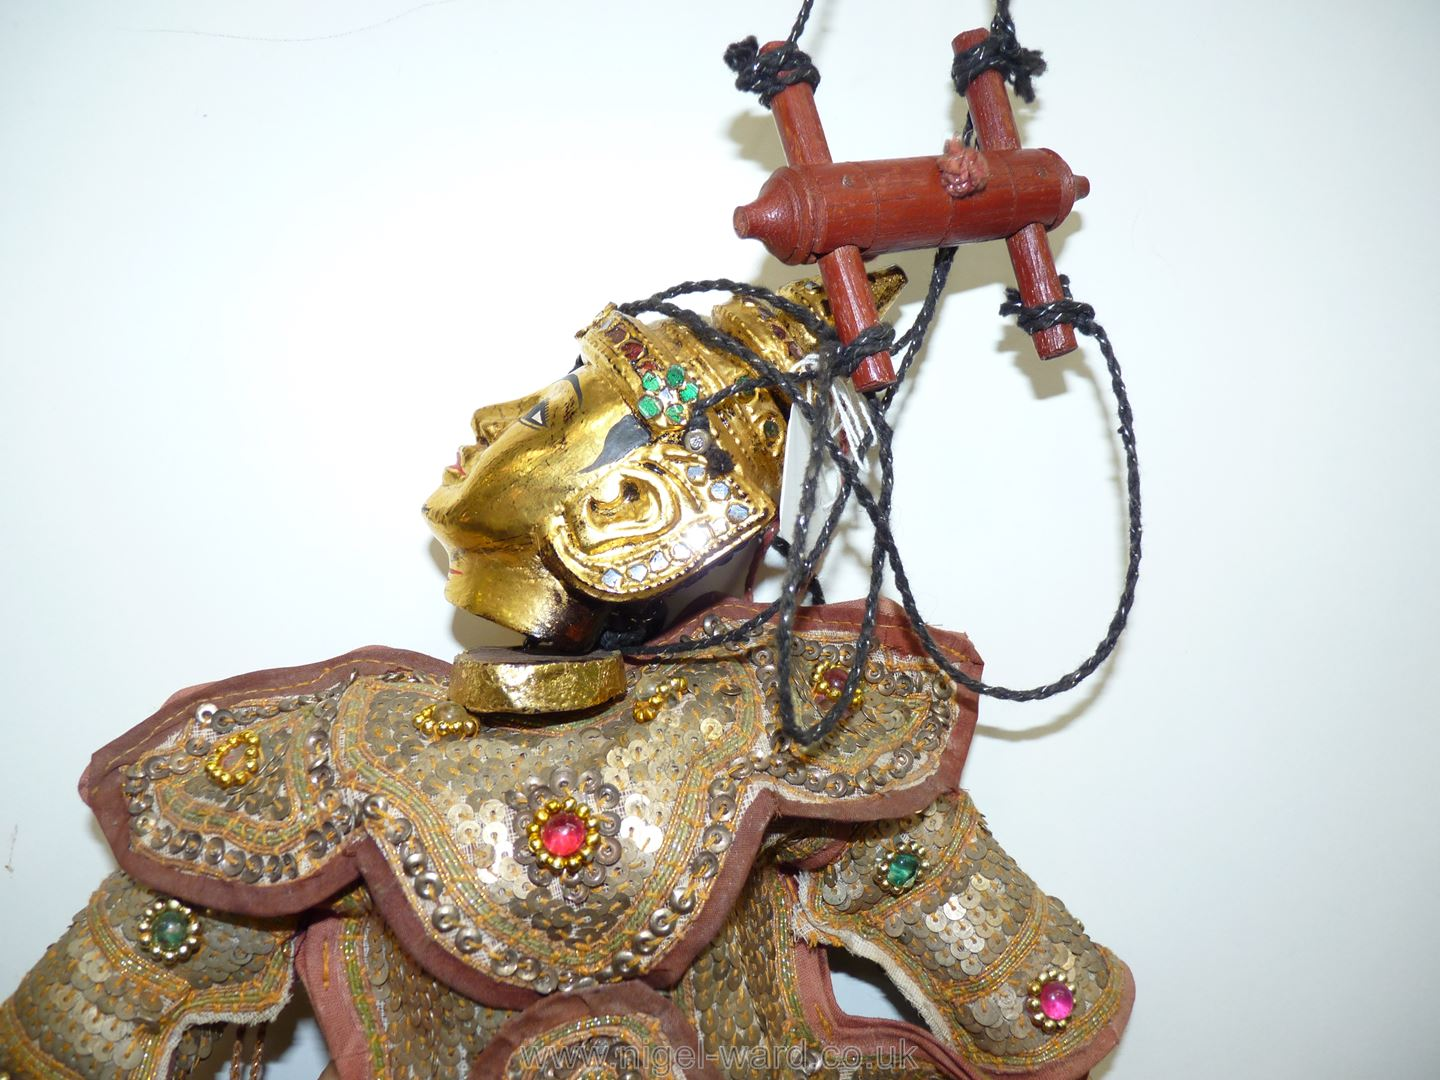 An ornate Thai Marionette richly decorated with sequins, 16 1/2'' tall approx. - Image 6 of 7